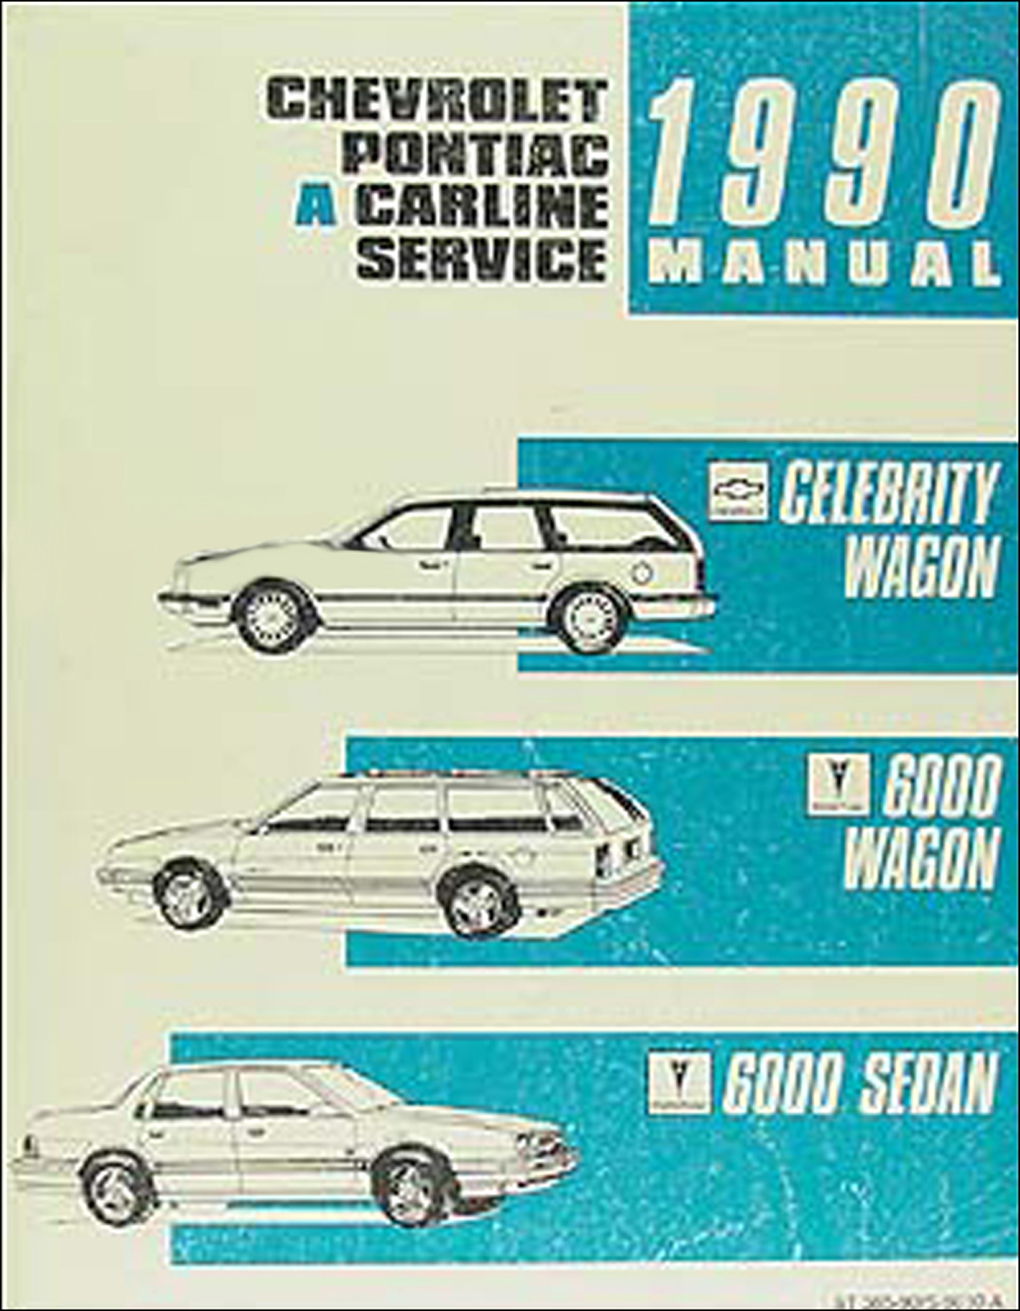 1990 Celebrity Wagon & 6000 Shop Manual Original